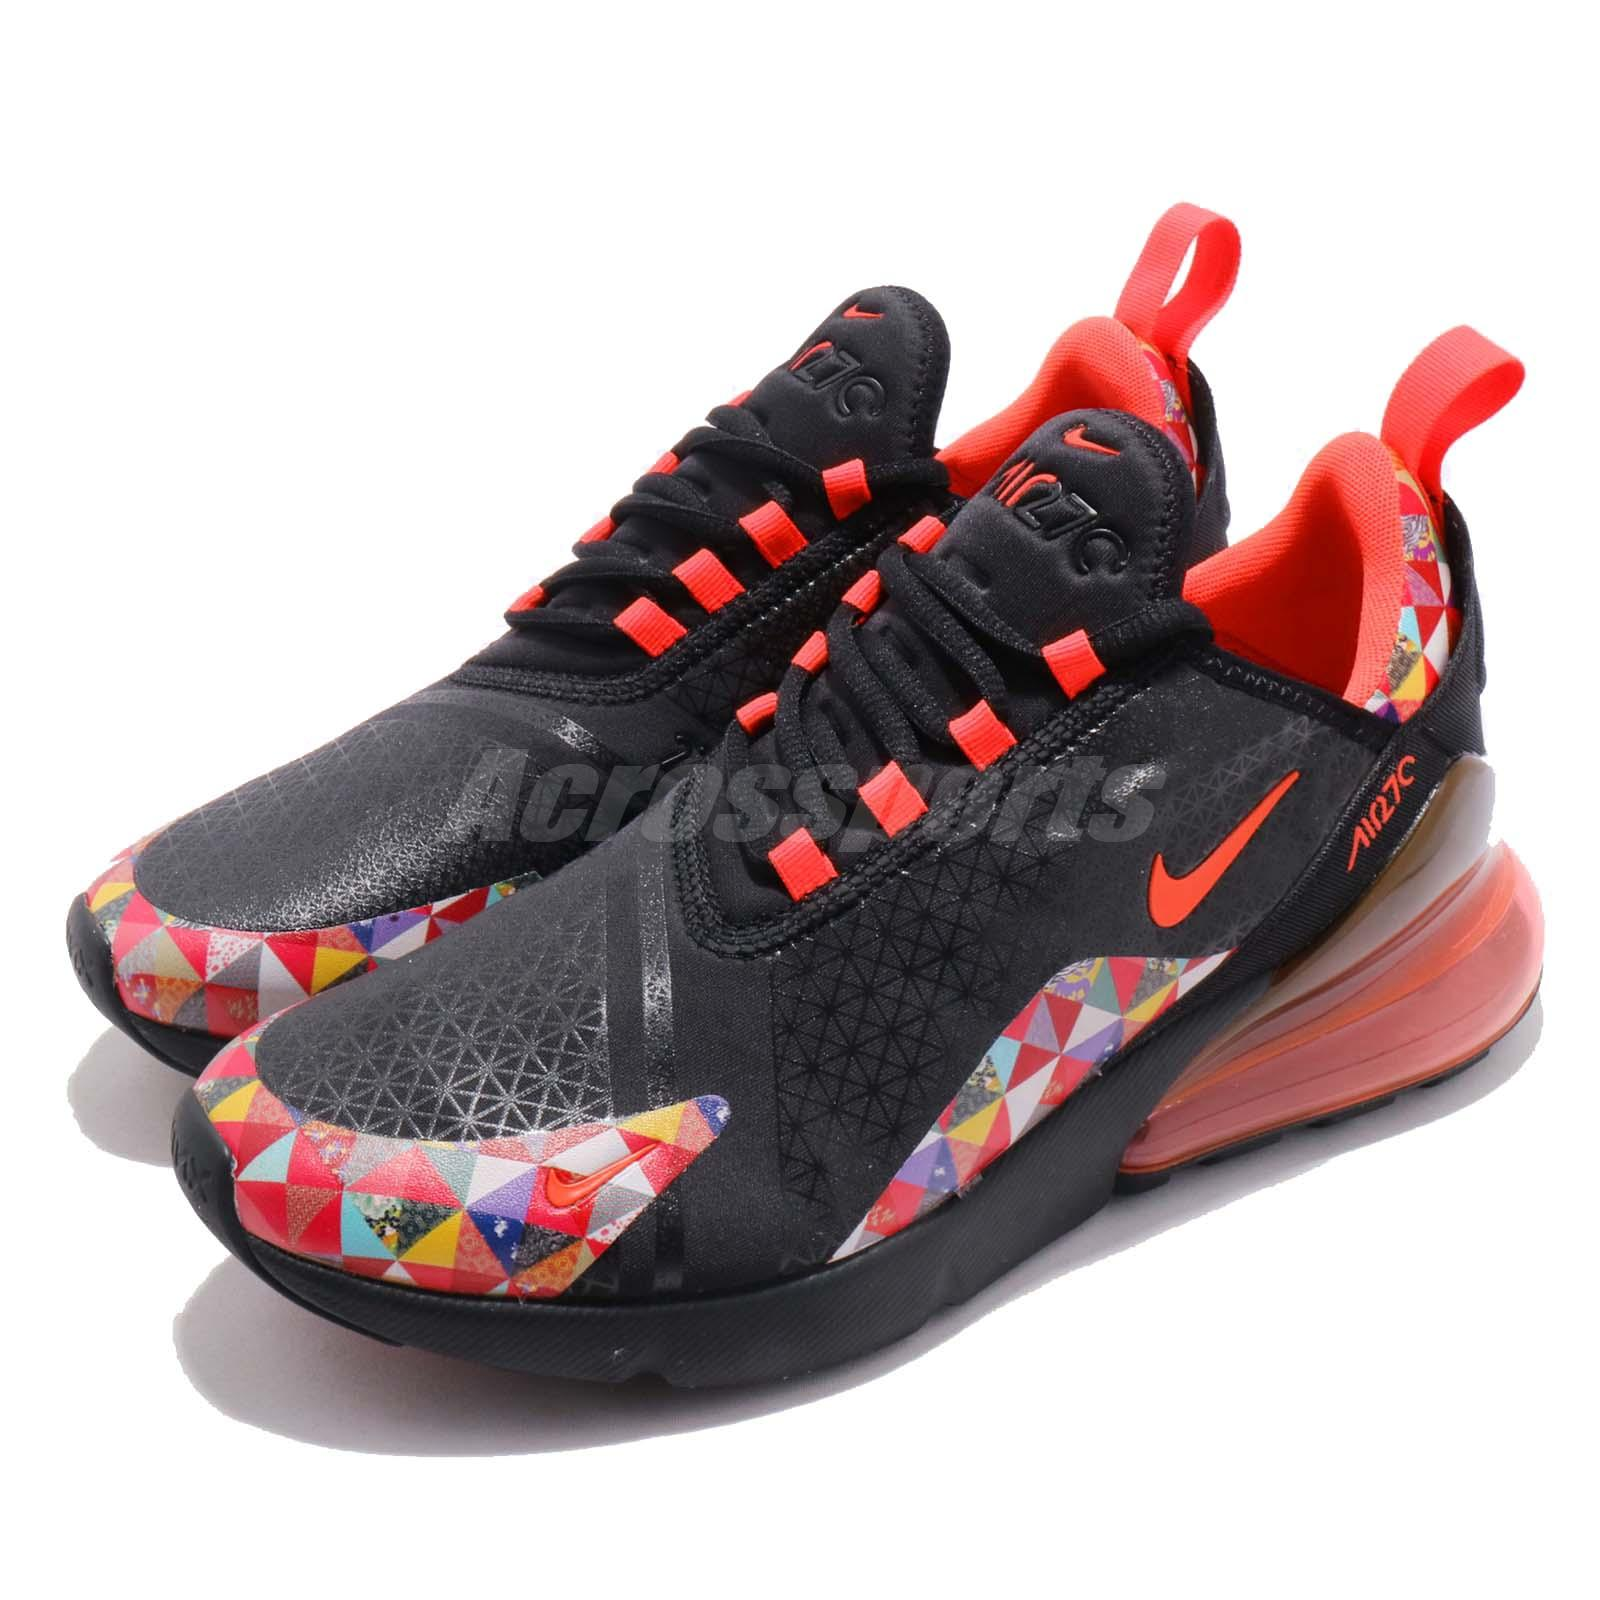 76c21ba57 Details about Nike Air Max 270 CNY Chinese New Year Red Black Men Running  Shoes BV6650-016